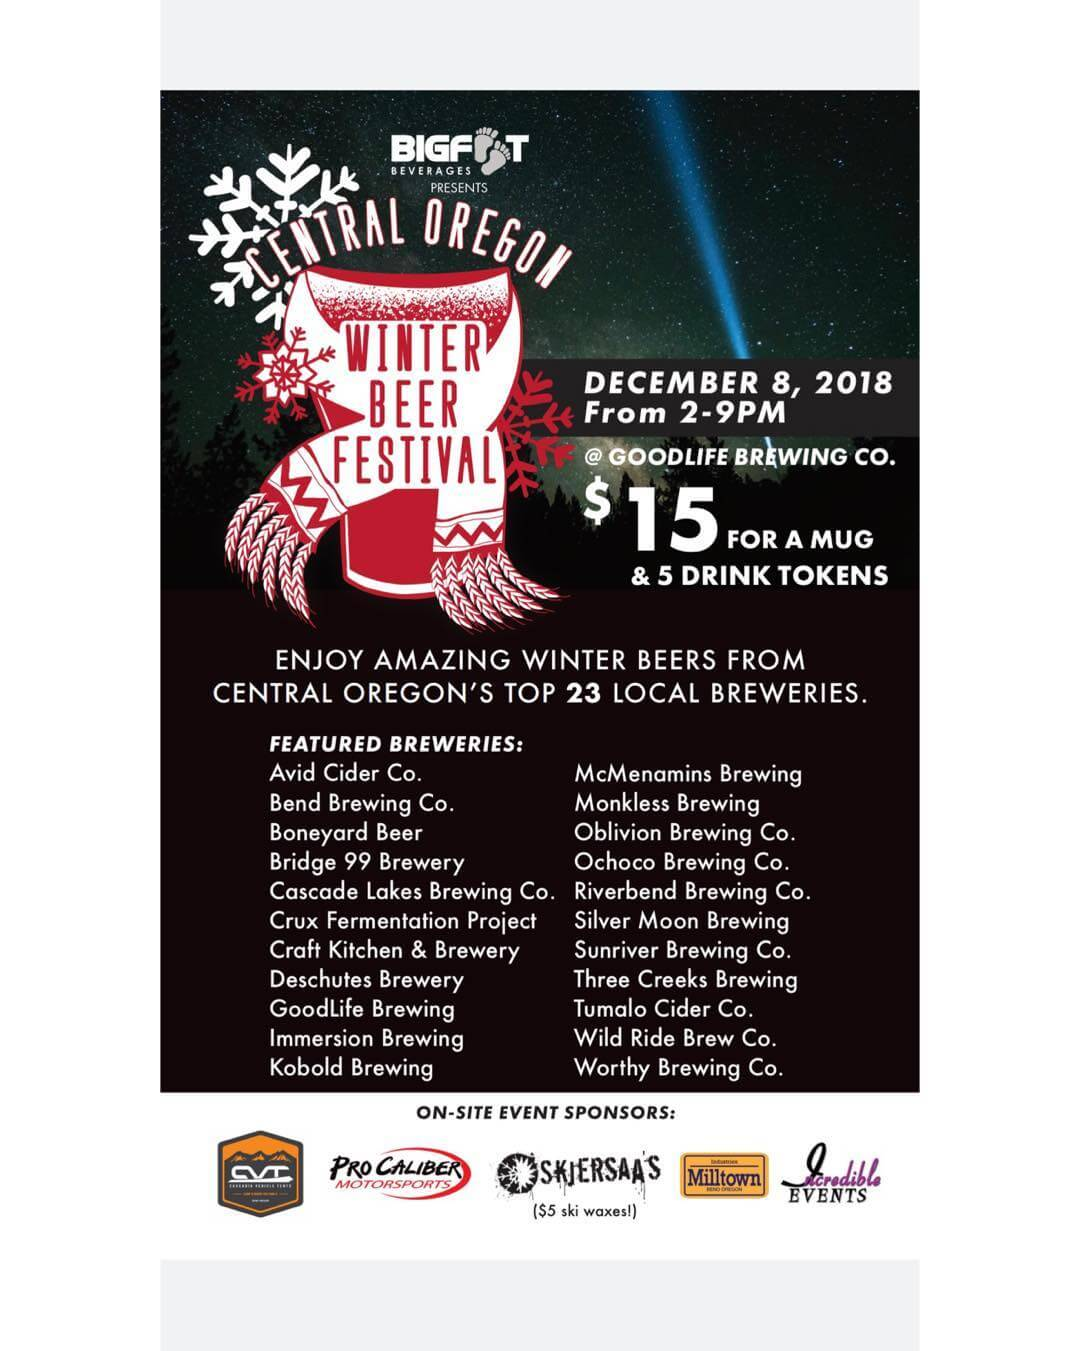 The 6th Annual Central Oregon Winter Beer Festival presented by @bigfootbeverages is less than 24 hours away and this year is shaping up to be the best yet! Tone Red is playing from 4:30pm-7:00pm while @bigskispierogi @parrillagrillbend and @dasbrat.wagen are serving delicious food all day! @cvttents and @procaliber_bend will be showcasing their goods and @skjersaas will be waxing skis and snowboards for $5. 100% of the proceeds of the event goes to the Central Oregon Brewers Guild so grab some friends and let's raise some money tomorrow! #cowbf18